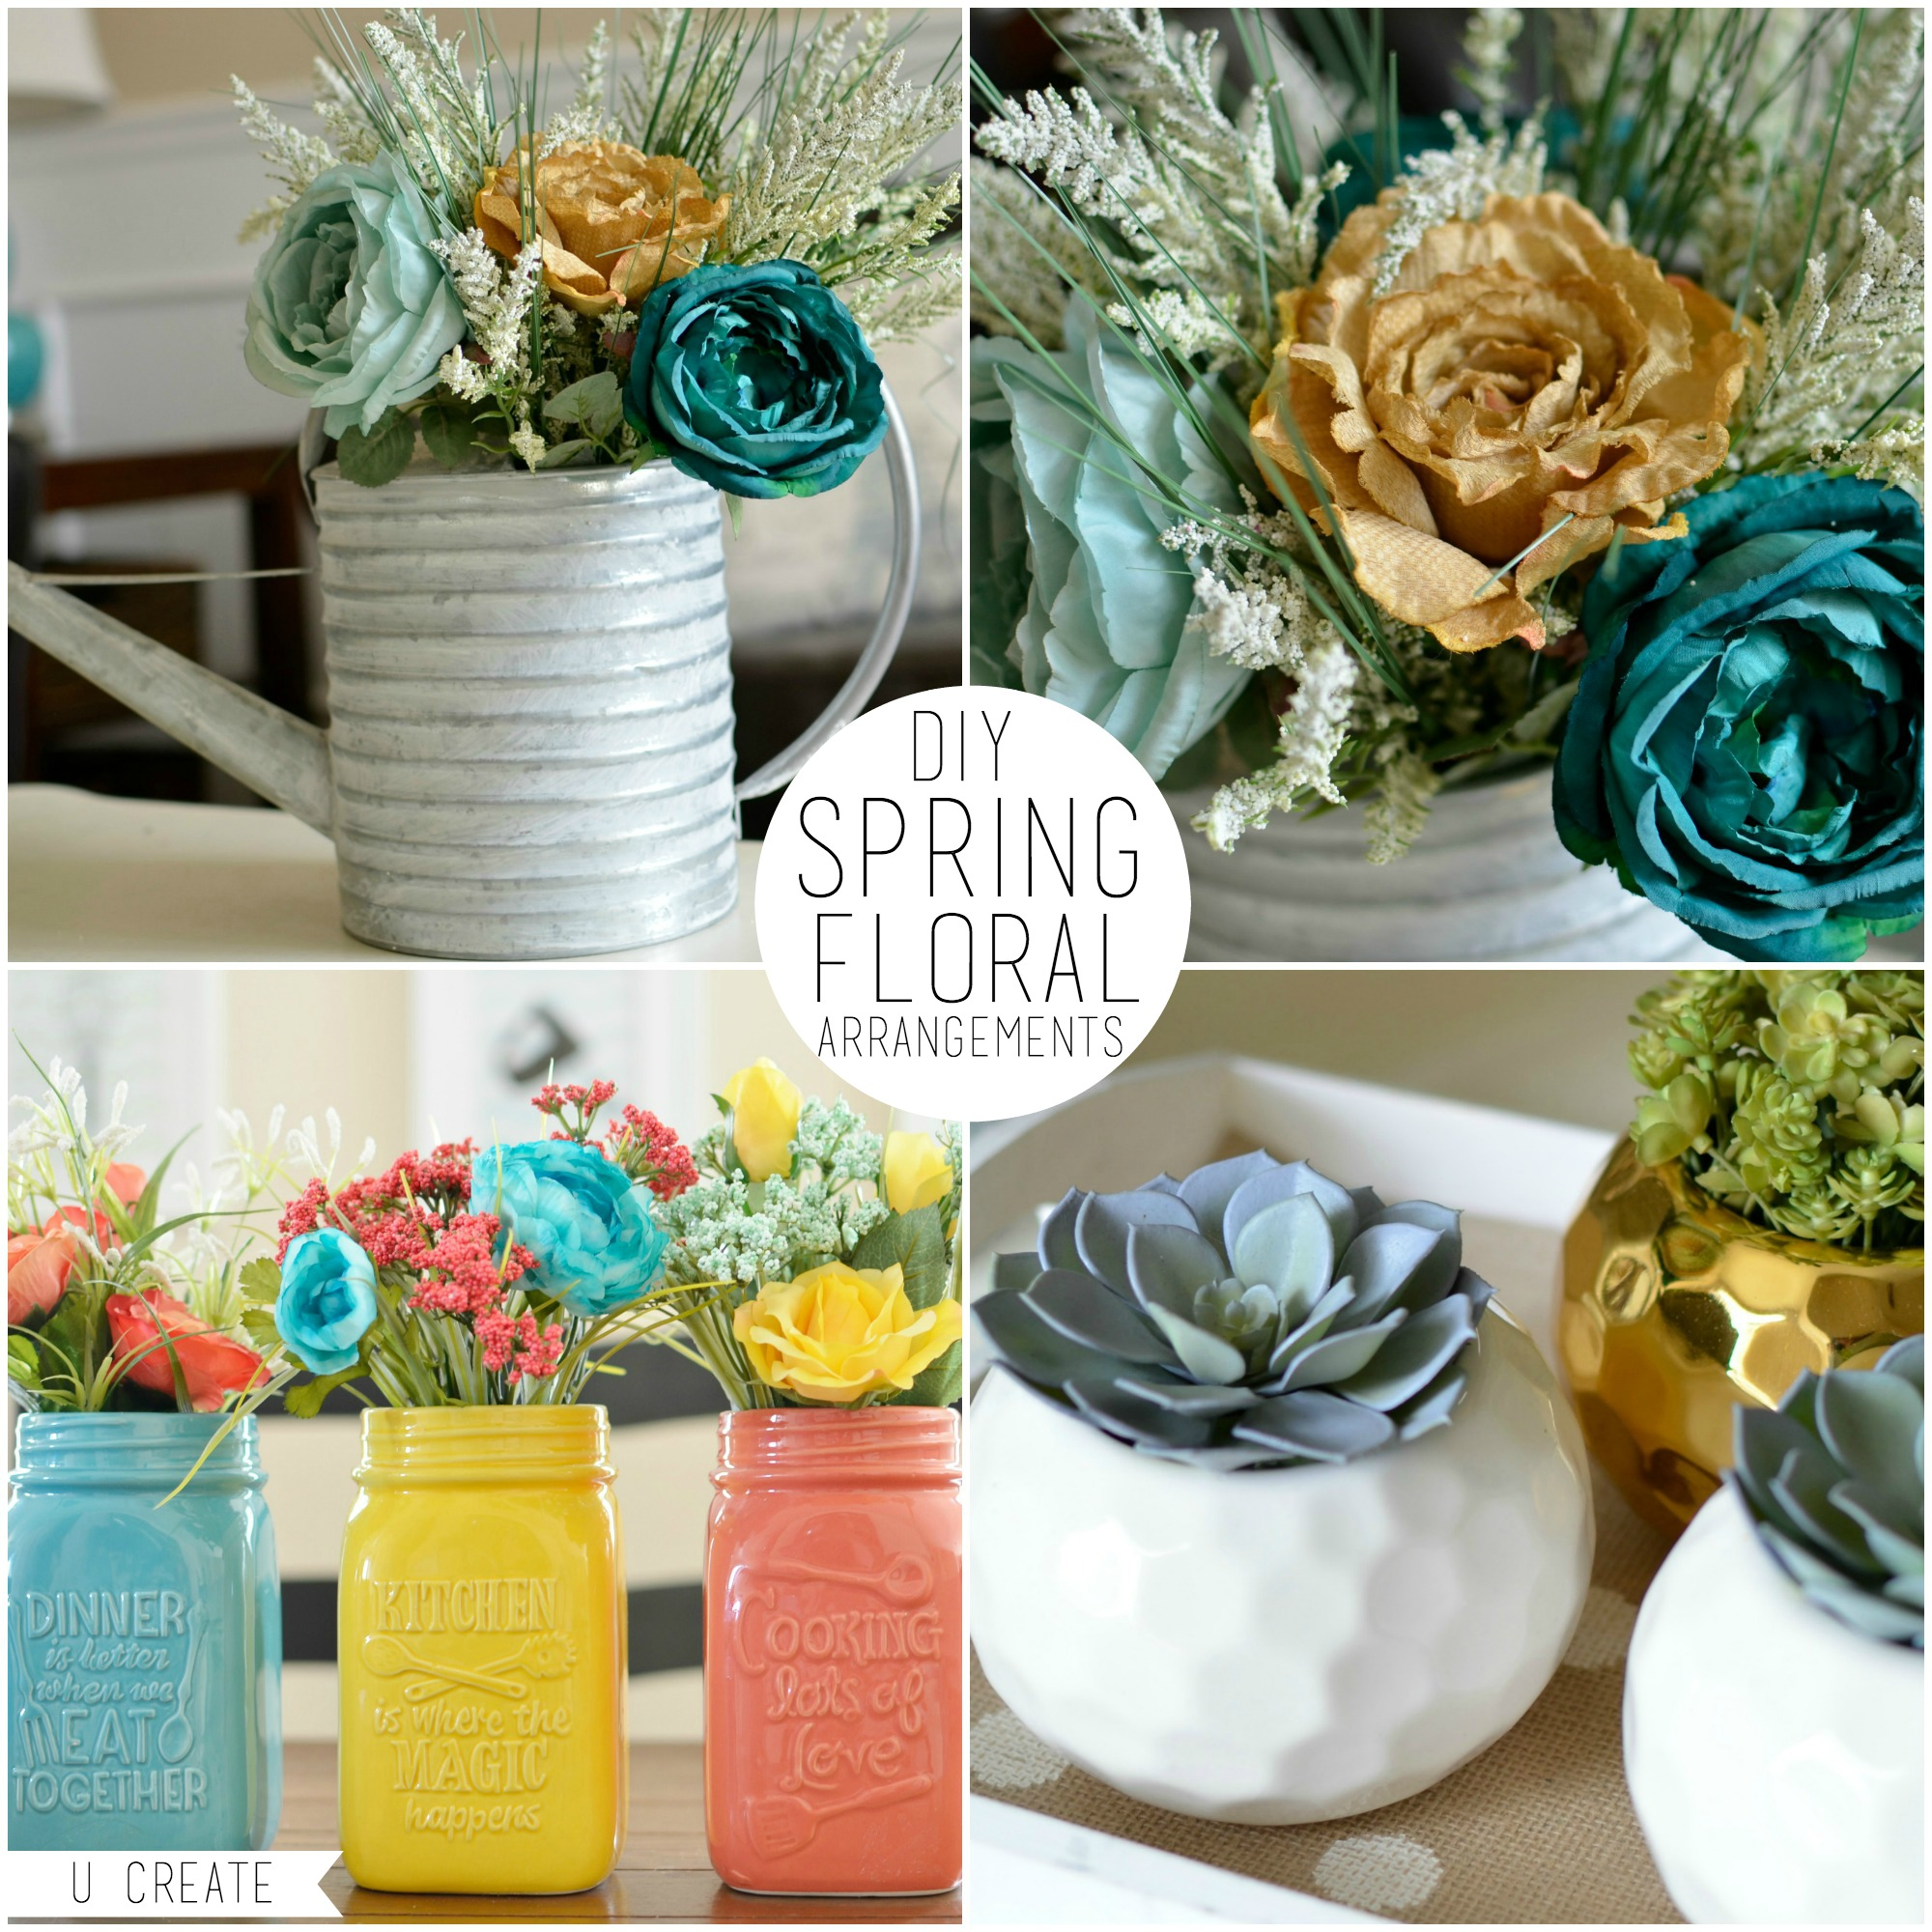 Diy Spring Floral Arrangements U Create